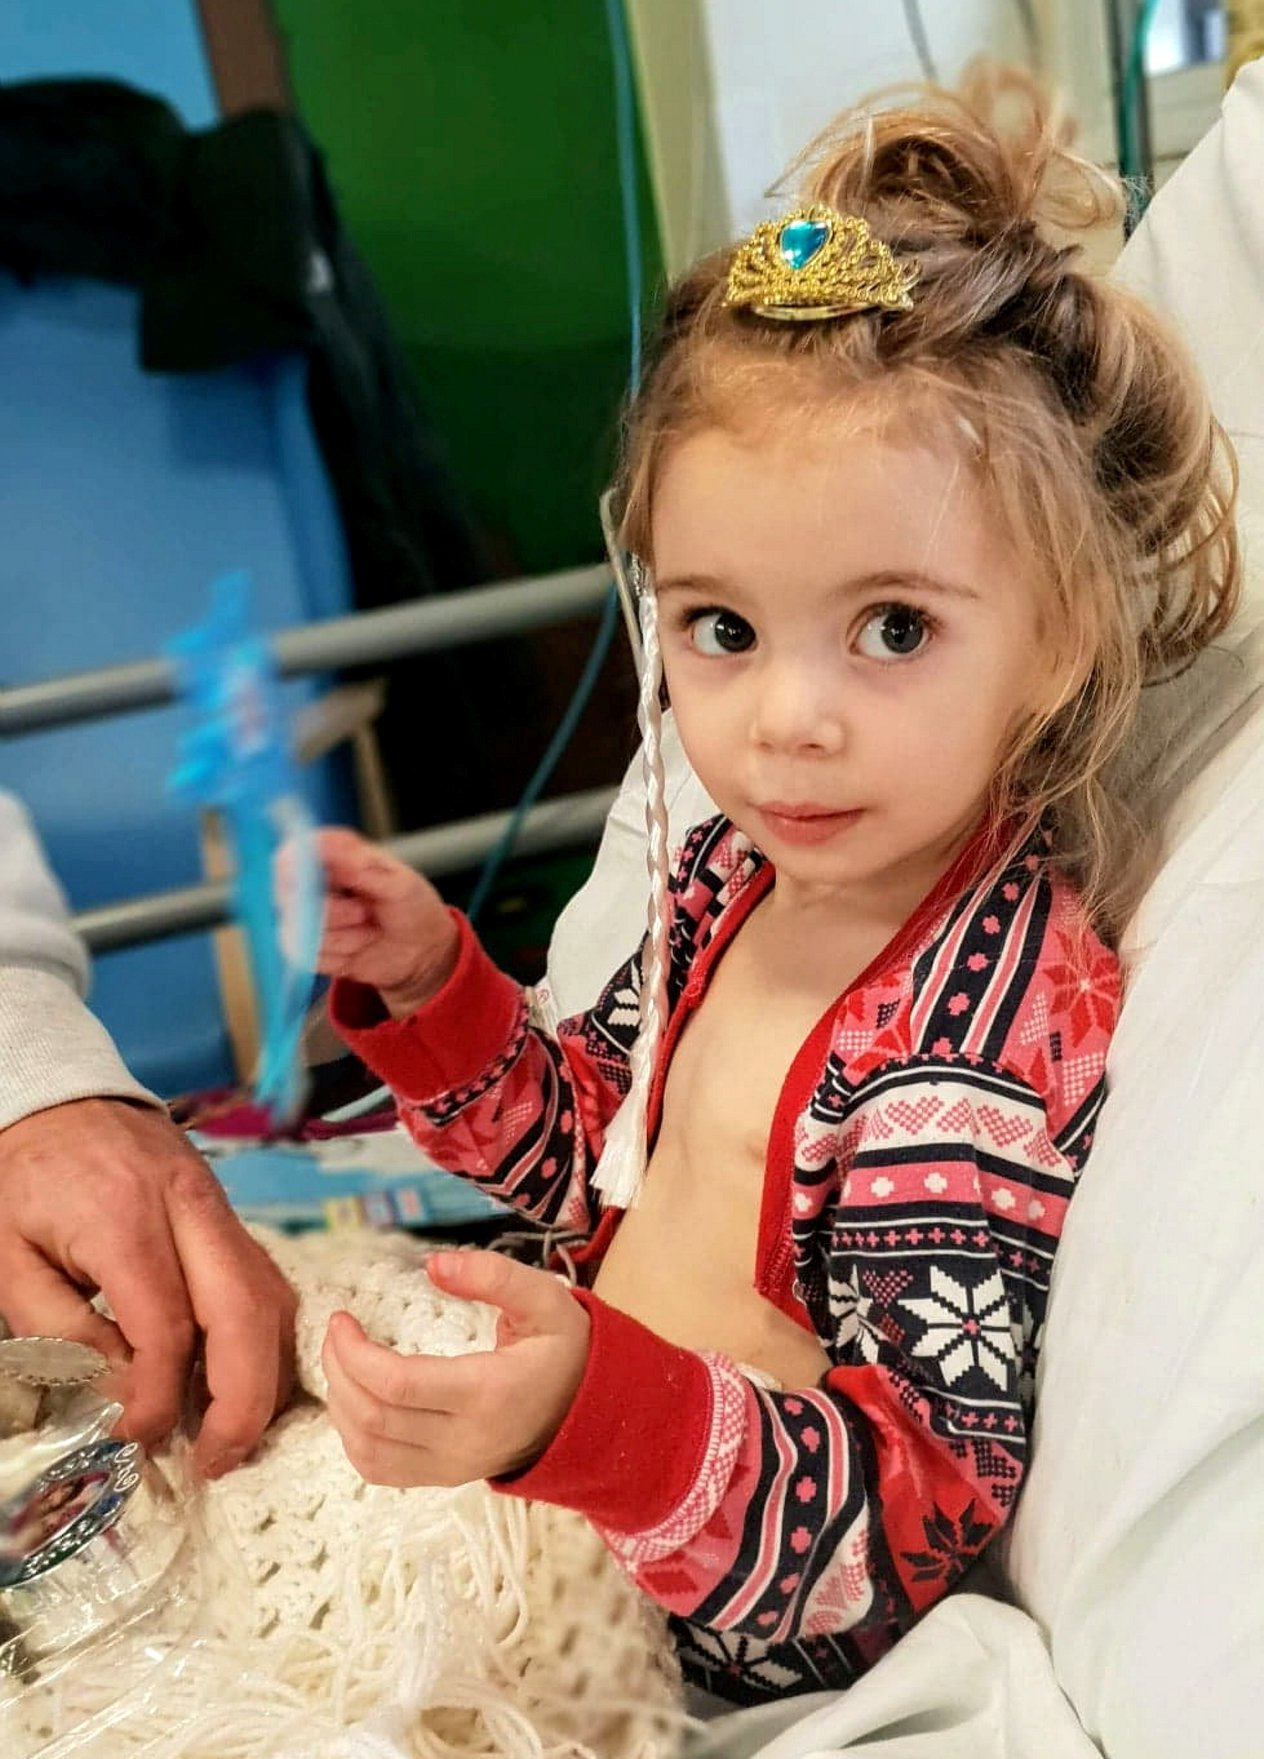 """Four-year-old Thalia-Beau Wright. A mother-of-two has spoken of the devastating moment she was told her four-year-old daughter had a """"one in a million"""" condition -- which means she is in need of a HEART transplant. See SWNS story SWLEheart. Ellie-Mae Wright, 22, said her """"world changed forever"""" after her daughter Thalia-Beau Wright was diagnosed with Restrictive Cardiomyopathy on November 16, 2018. The condition is an ultra-rare form of muscle disease which stiffens the ventricles around the heart. The devastating diagnosis came just two days after Thalia-Beau - who was prone to infections but otherwise a healthy girl - was admitted to hospital with a suspected chest infection. Ellie-Mae was told by doctors the only hope for her """"sassy"""" and """"bubbly"""" daughter was a heart transplant - as the condition currently has no cure or treatment."""